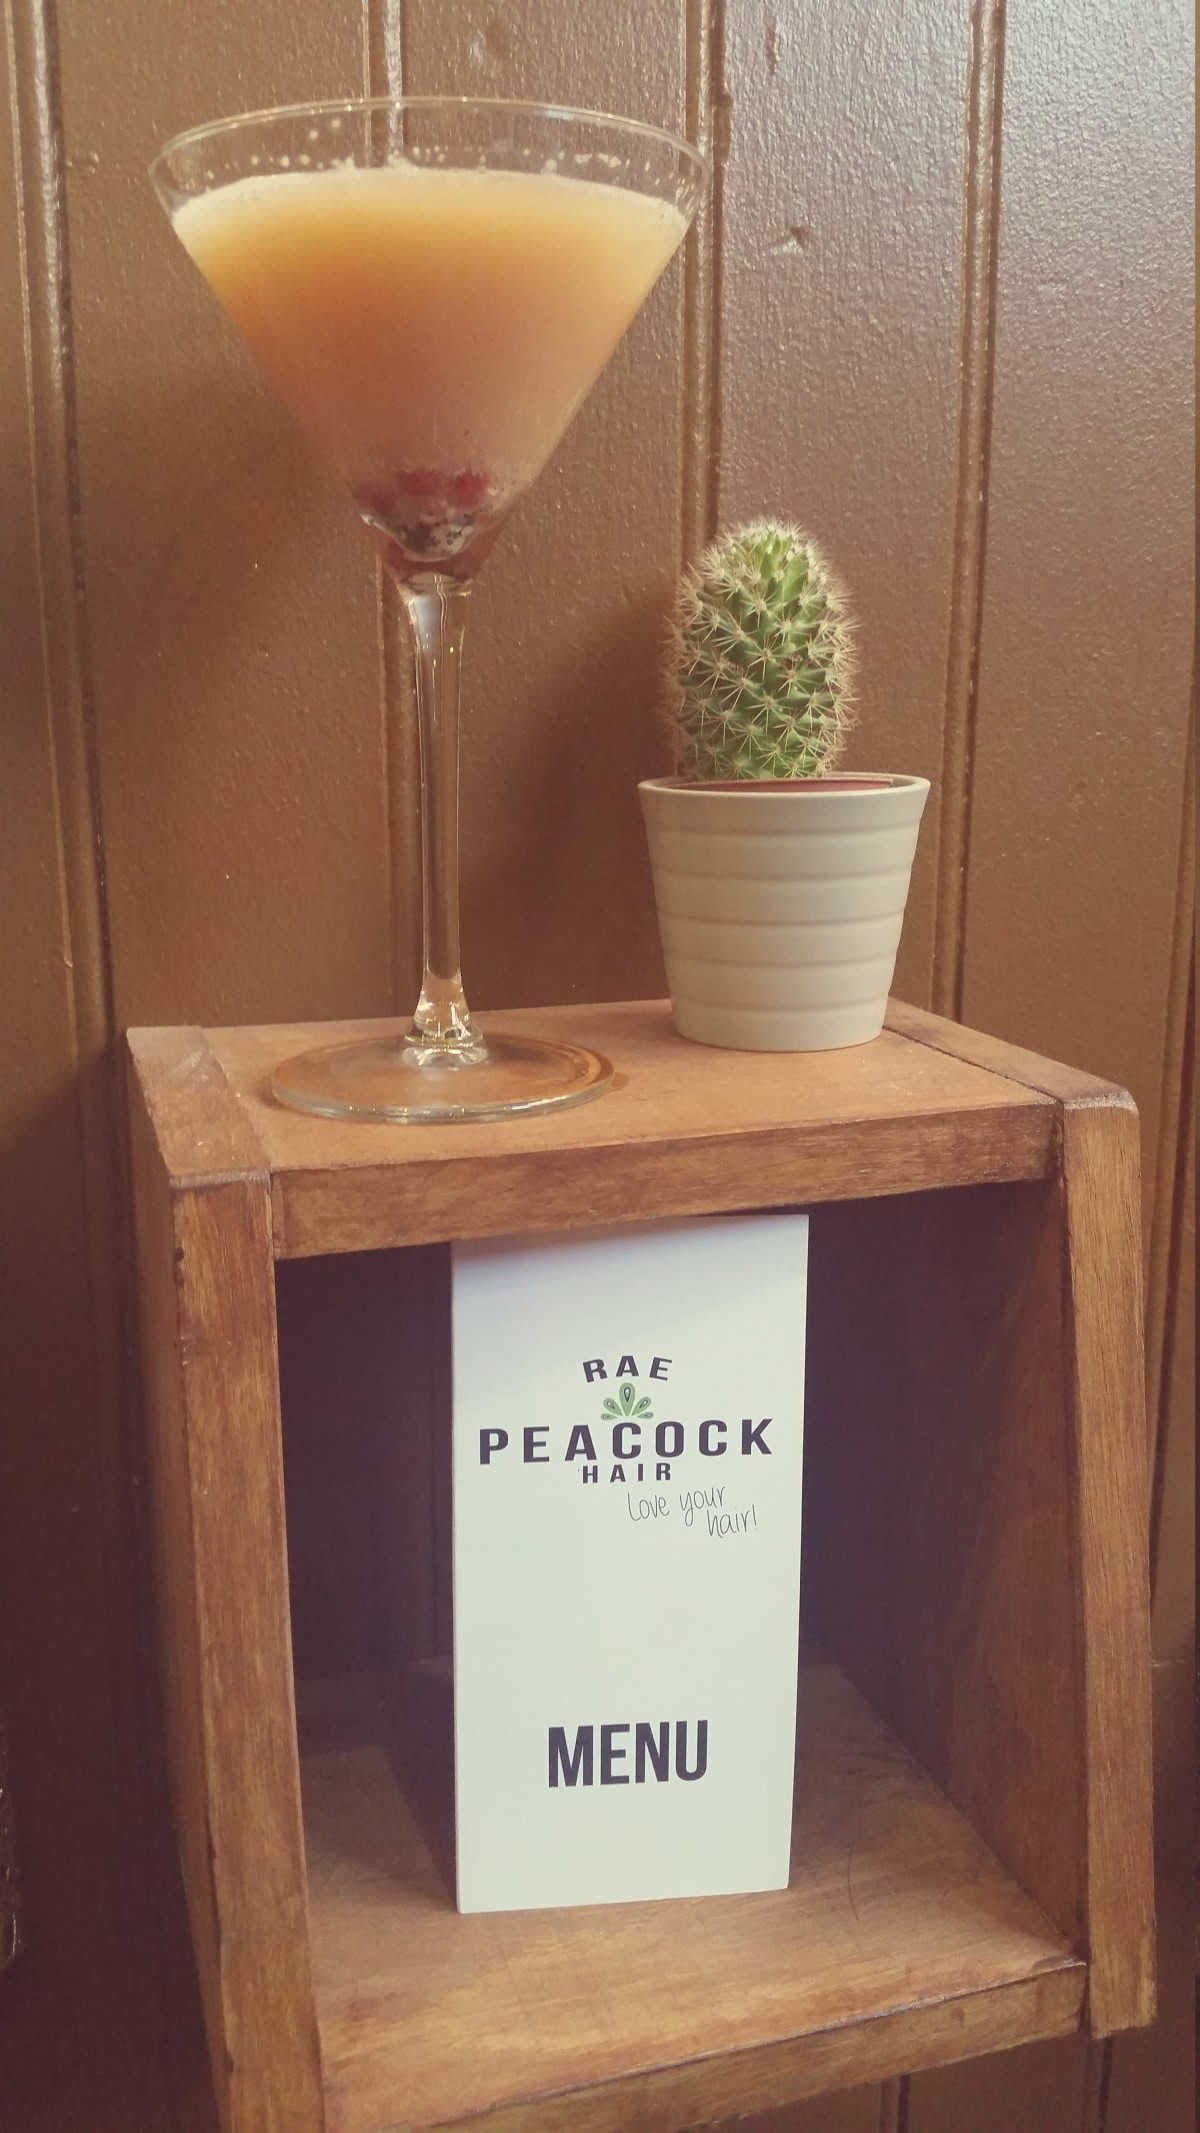 Rae Peacock cocktail